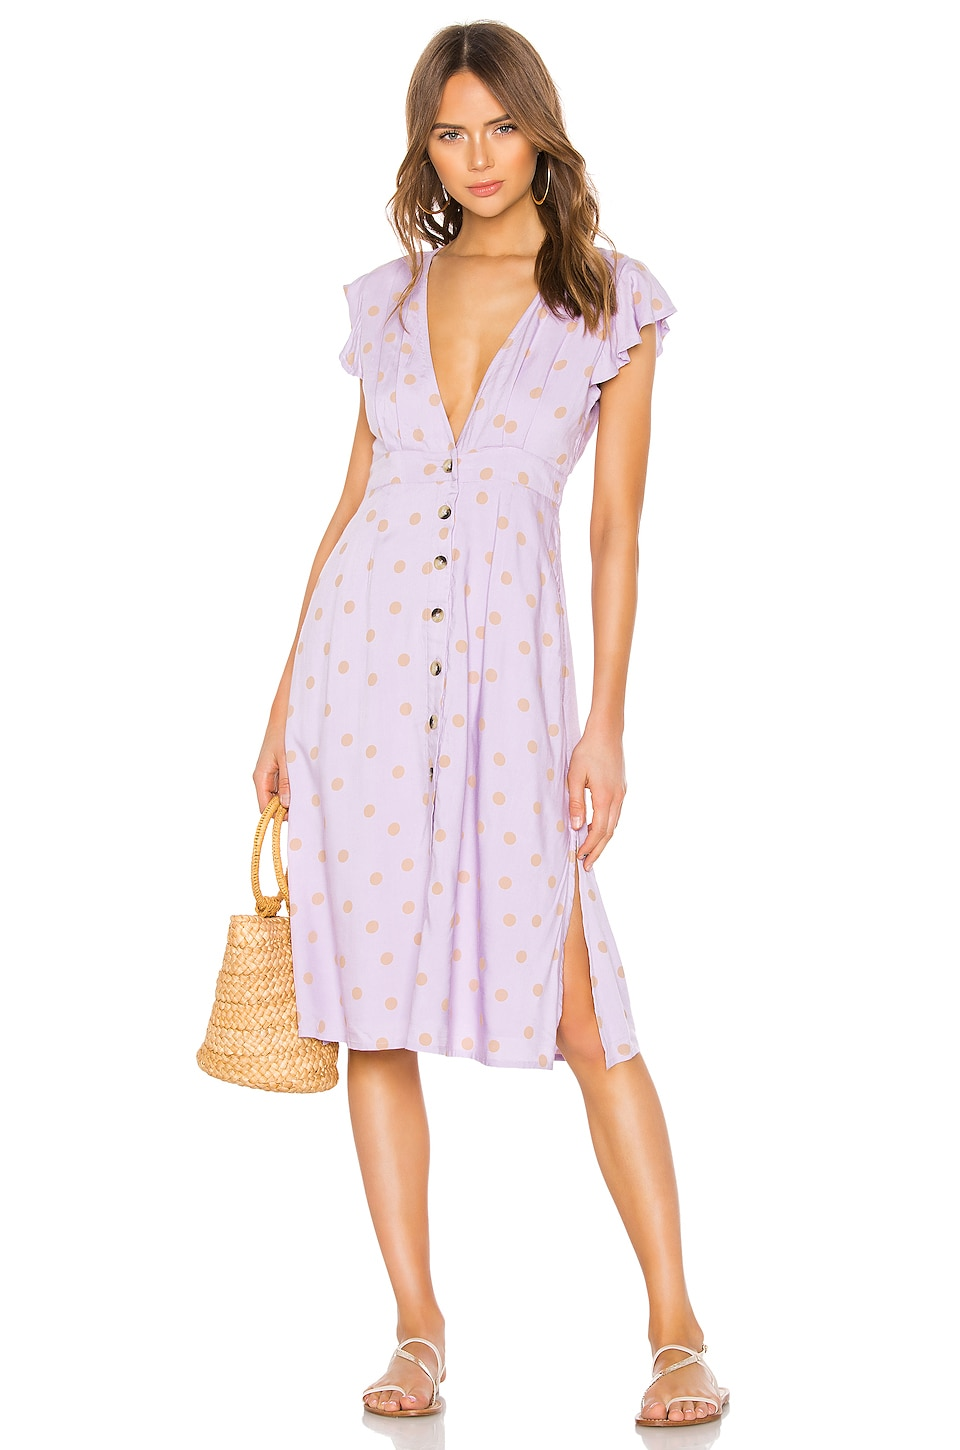 X REVOLVE Jordan Dress             L*SPACE                                                                                                                                         Sale price:                                                                       CA$ 88.47                                                                  Previous price:                                                                       CA$ 195.19 18